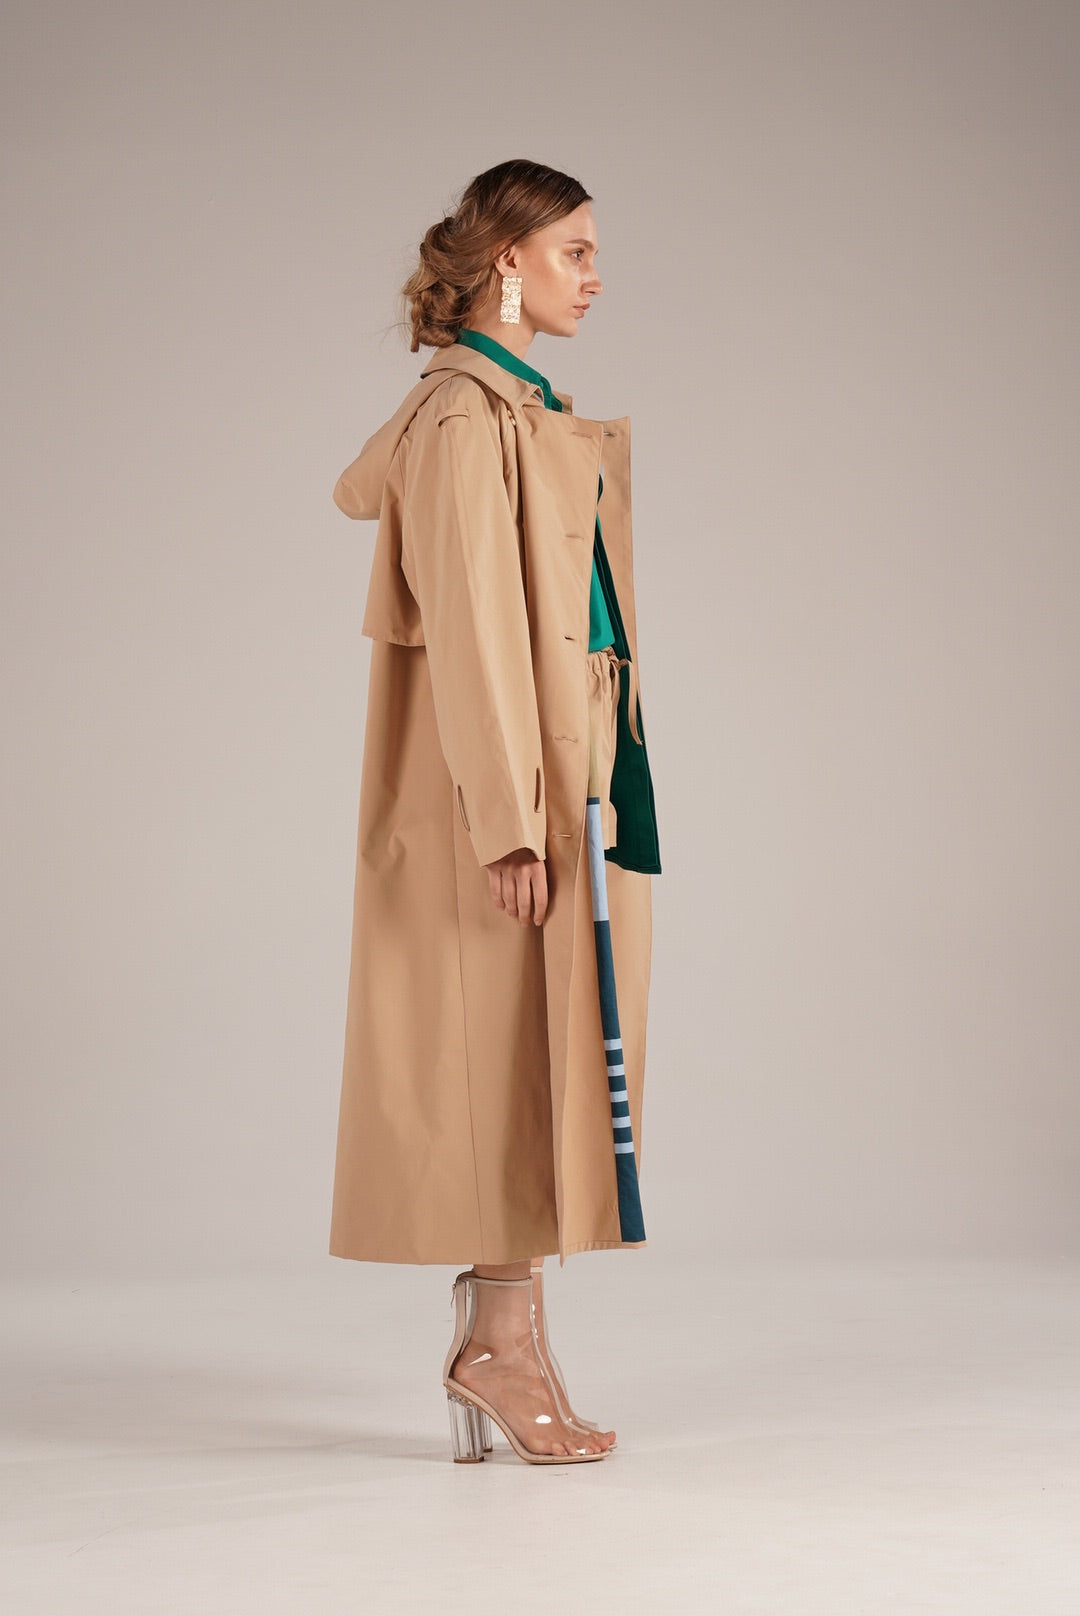 SS19-03 TRENCH COAT